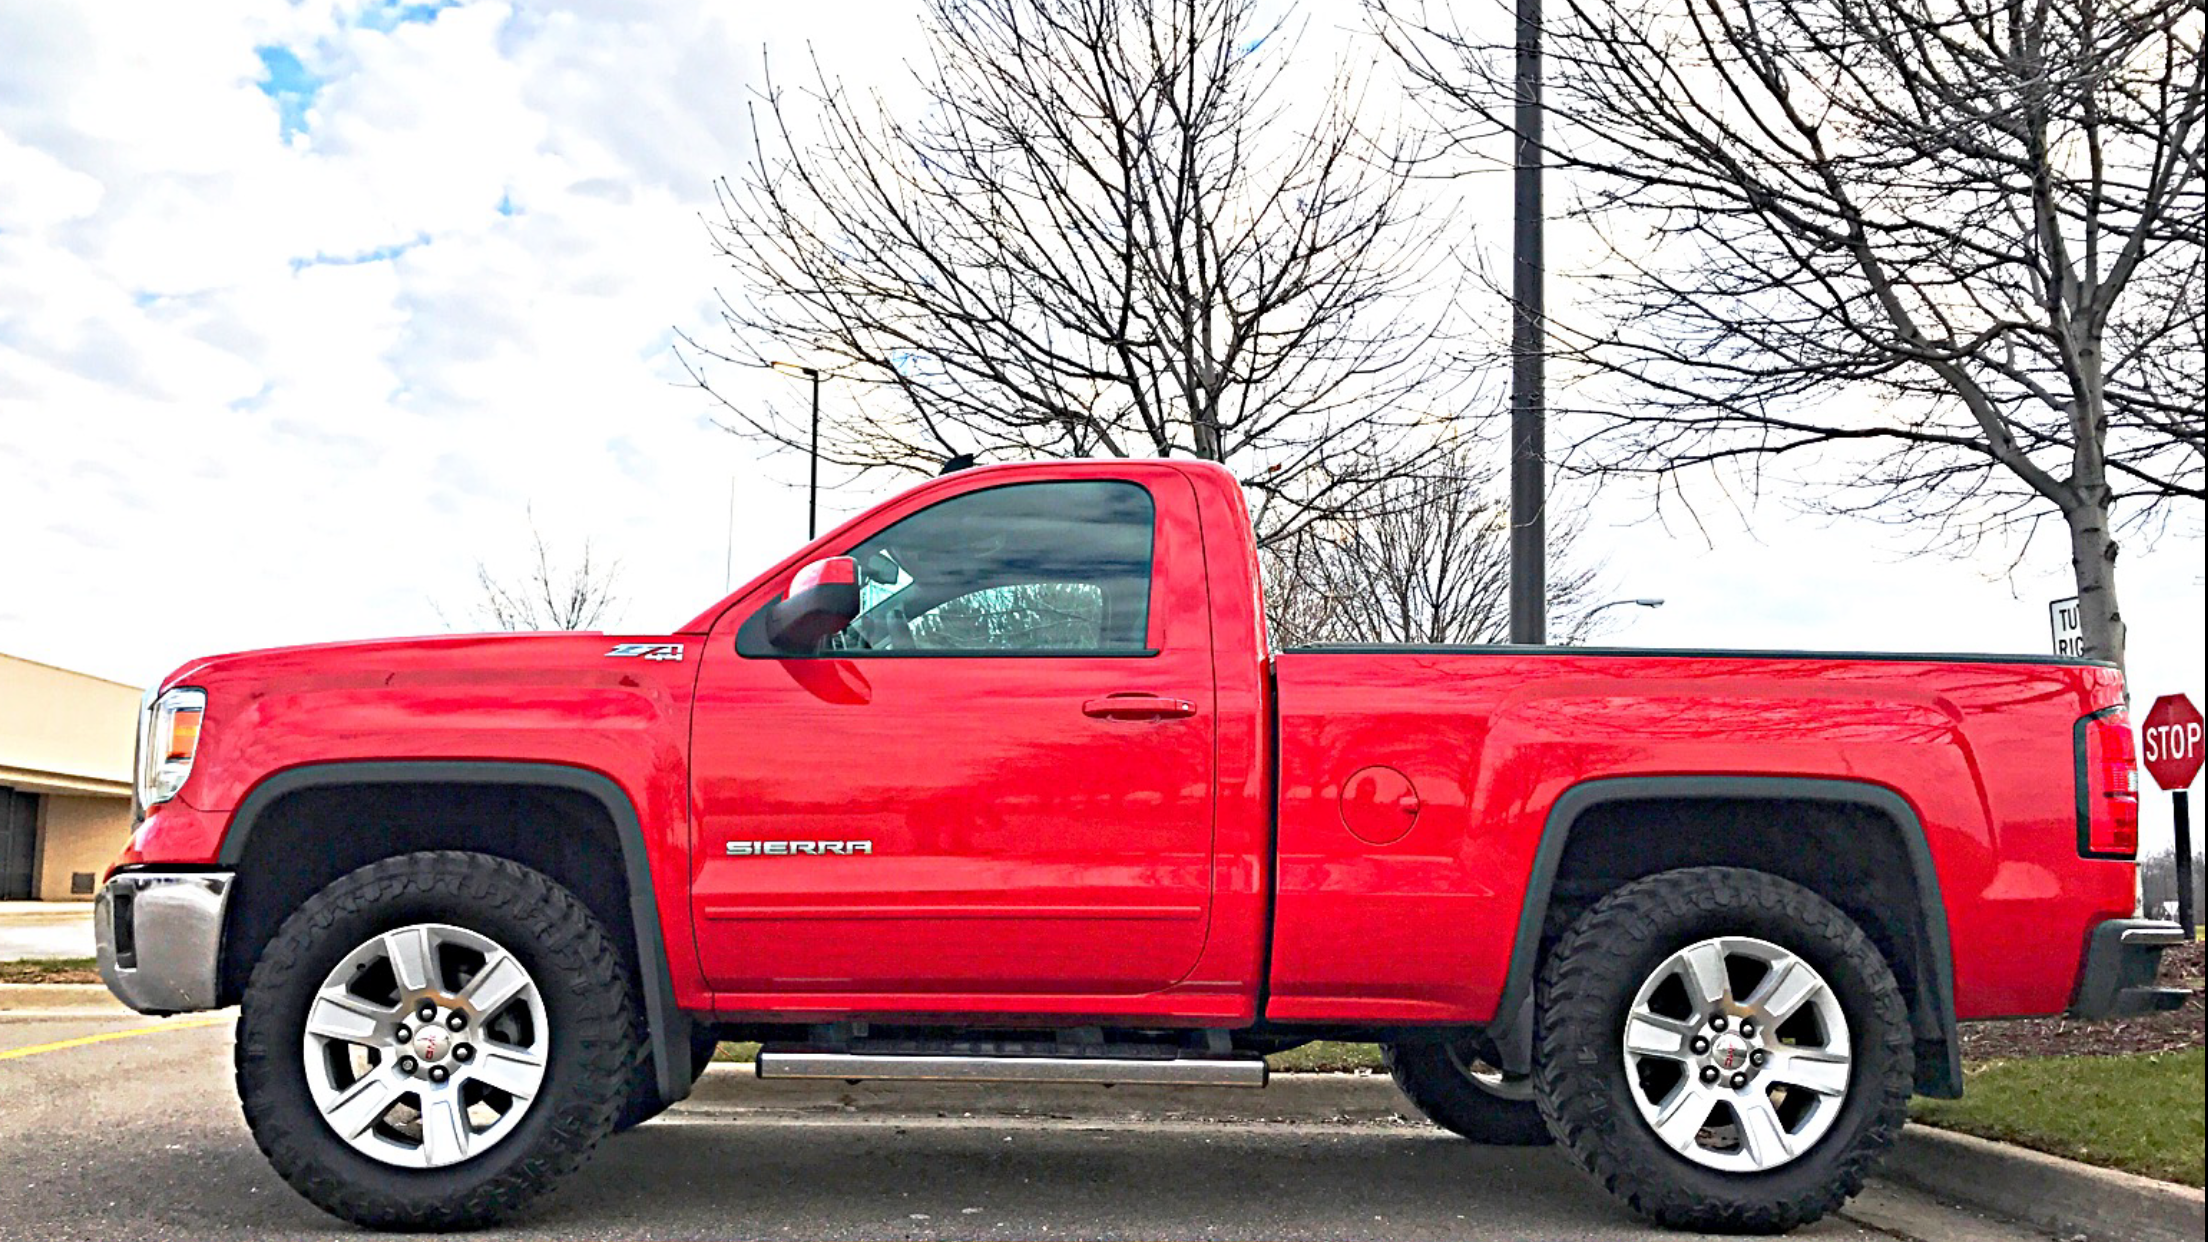 2015 Gmc Sierra Z71 4x4 Regular Cab Leveled With Stock 20s On 35